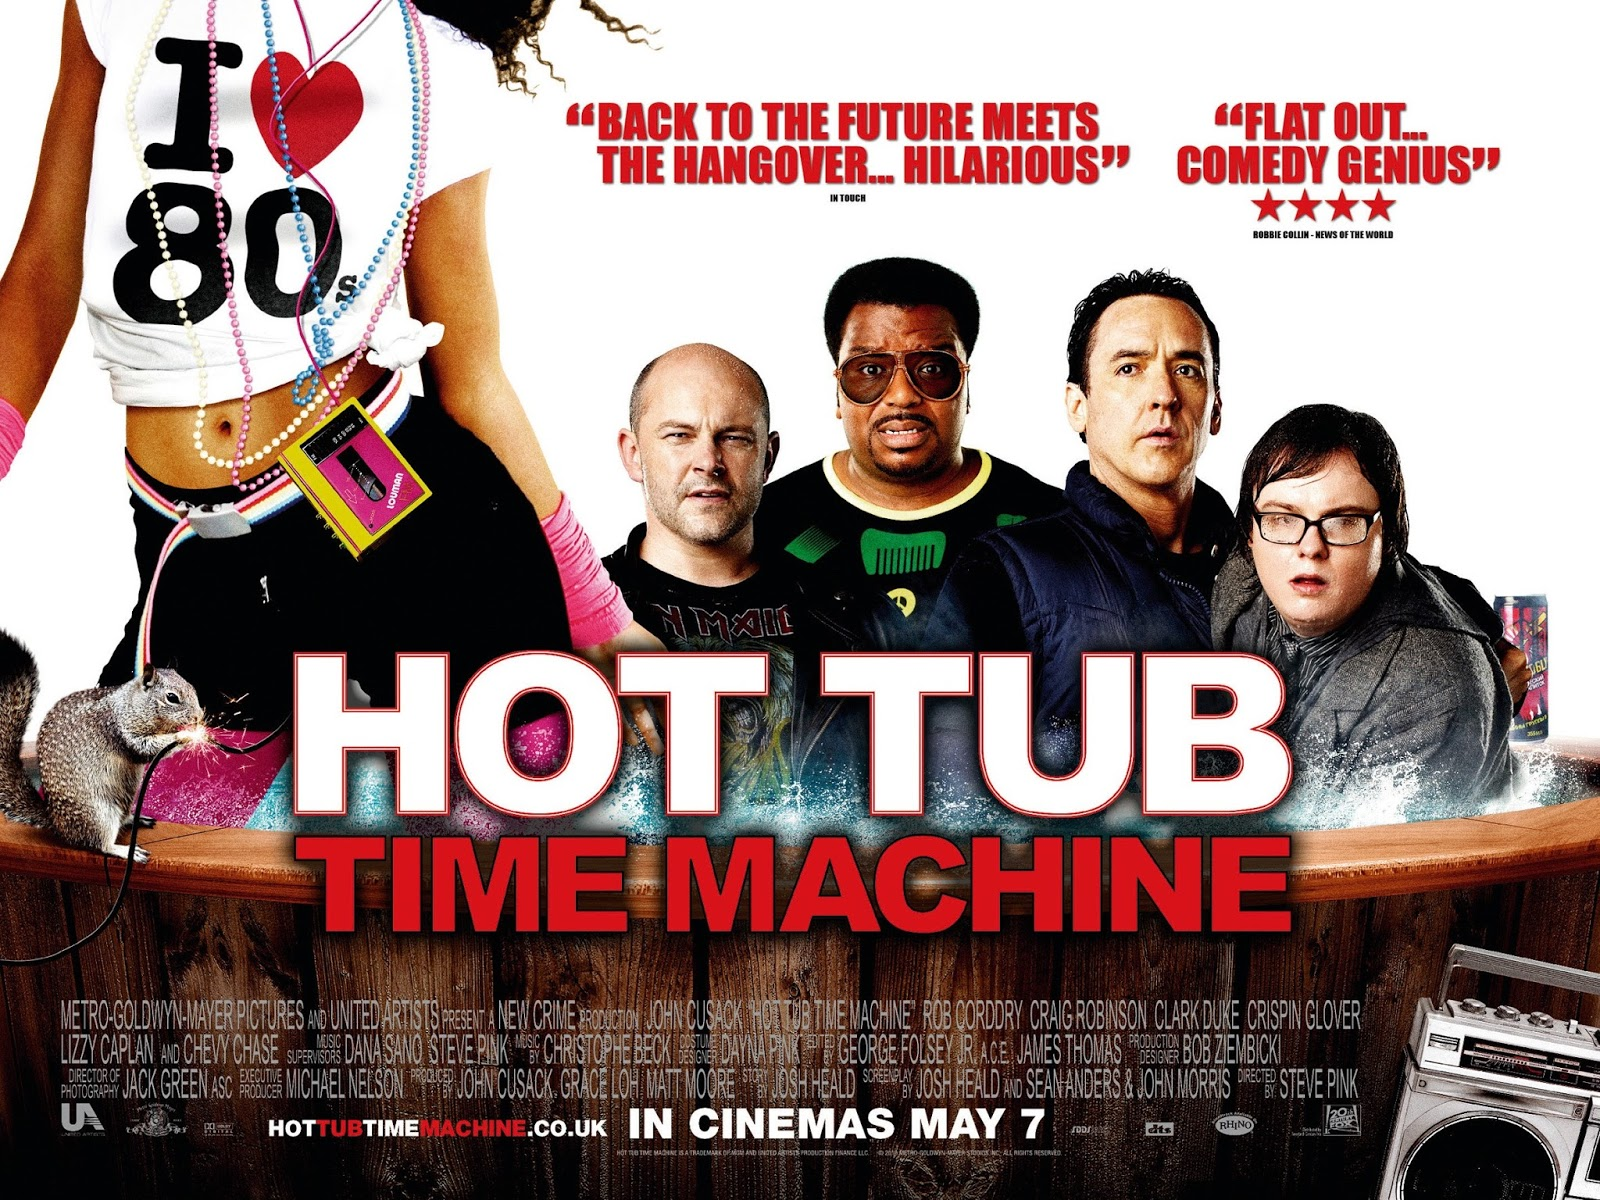 Hot Tub Time Machine 2 Wallpaper 8   1600 X 1200 stmednet 1600x1200